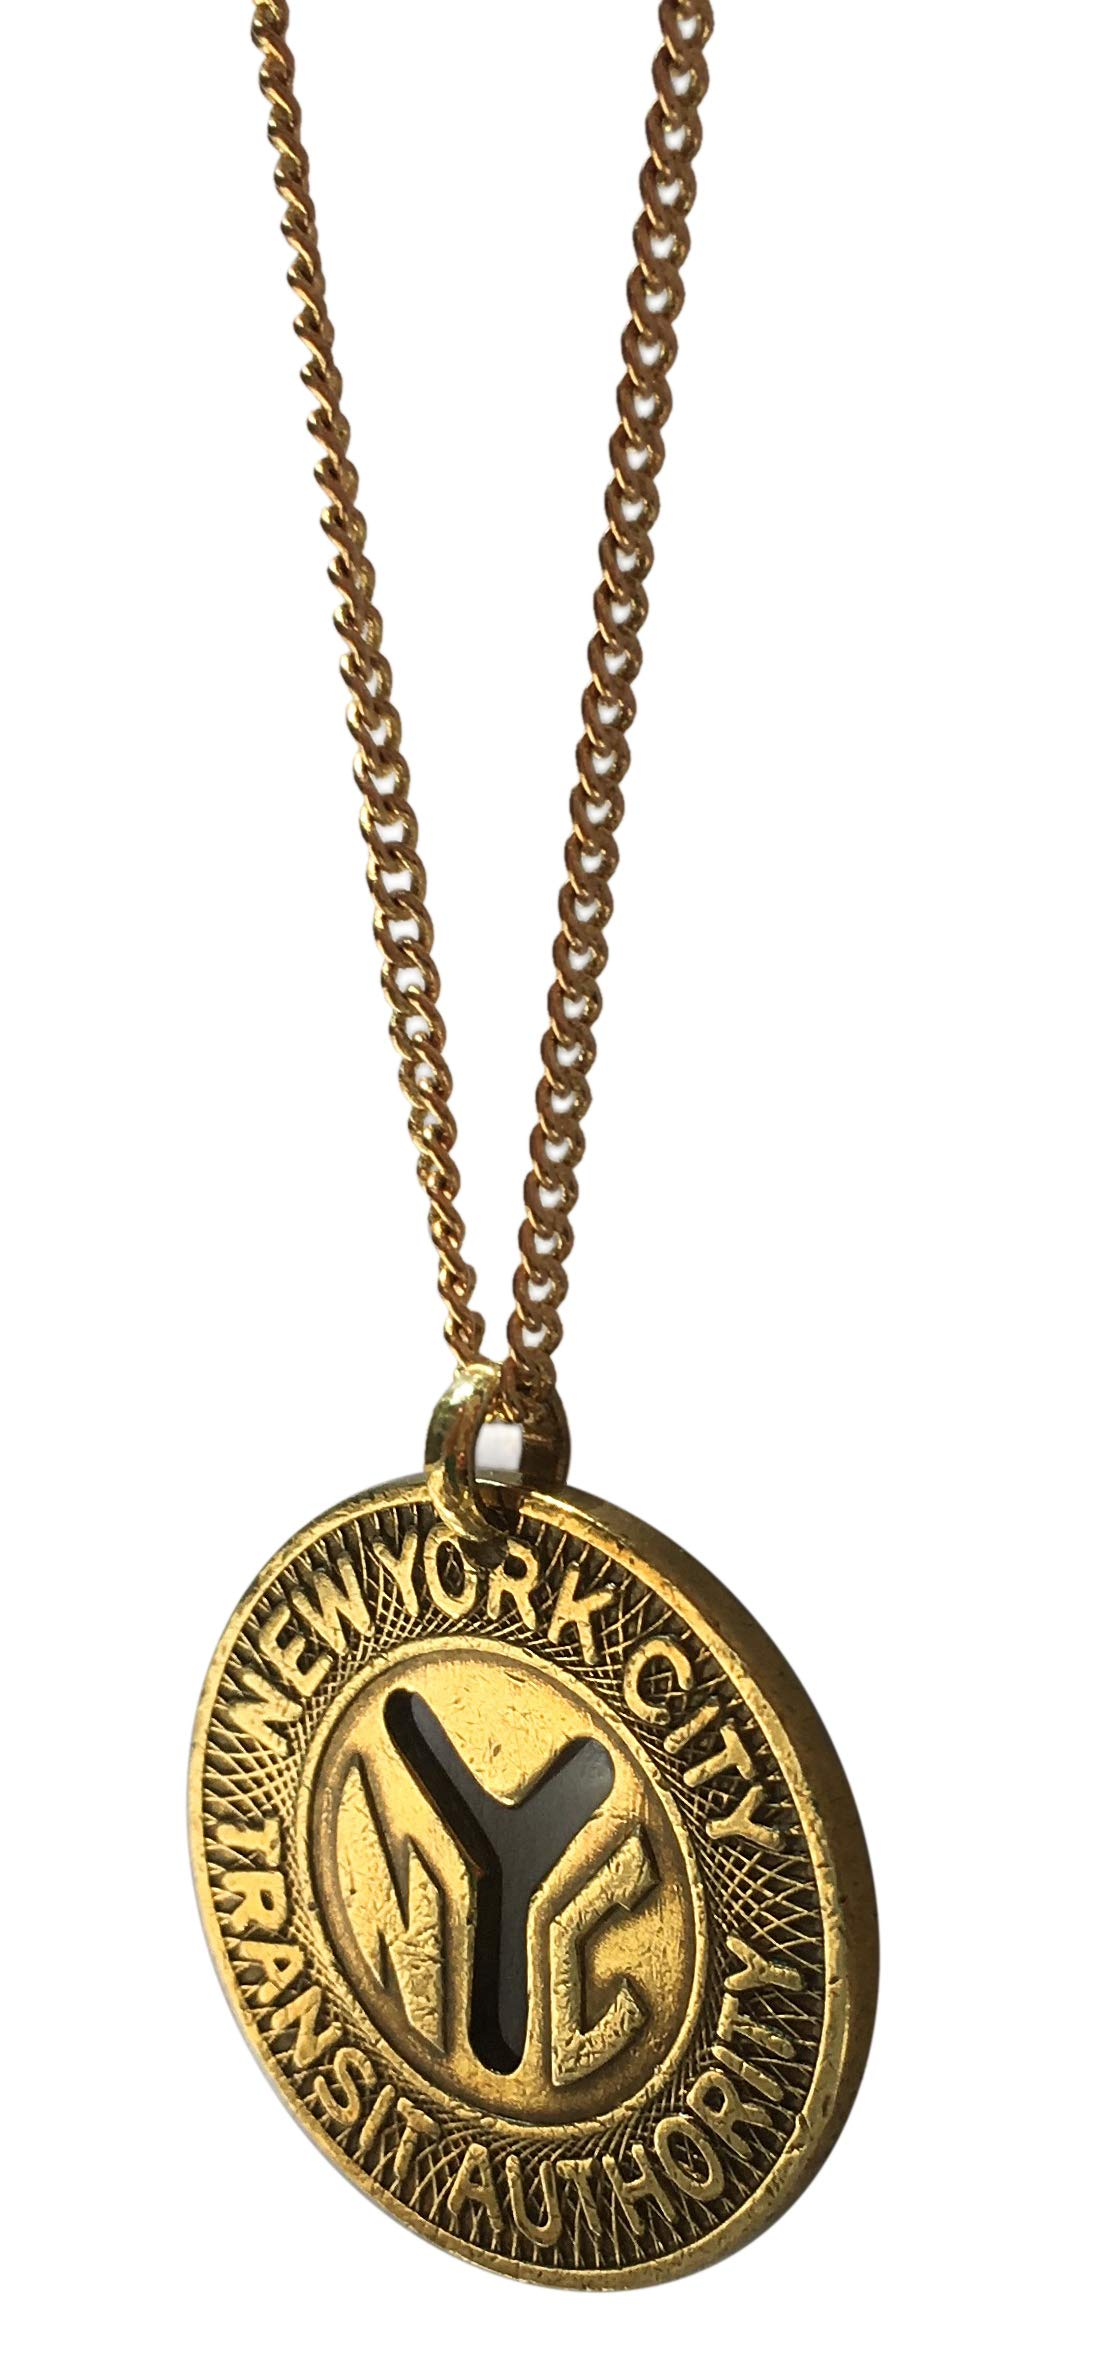 Worn History Authentic NYC Large Y (1970-1979) Subway Token Necklace (30'')